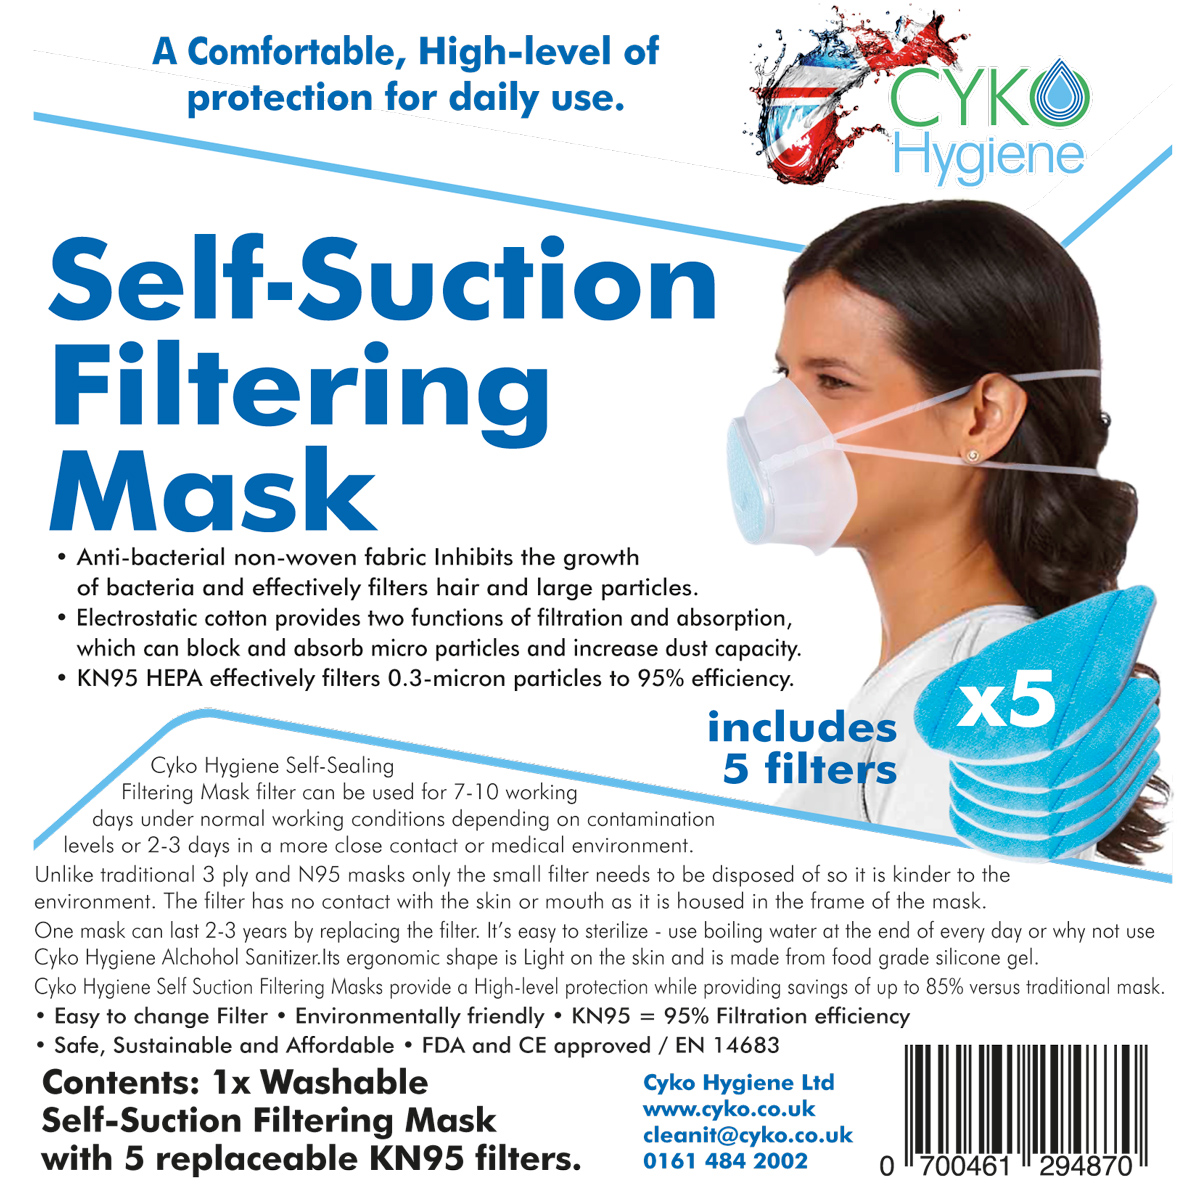 Our KN95 Face Masks, with 5 filters included.